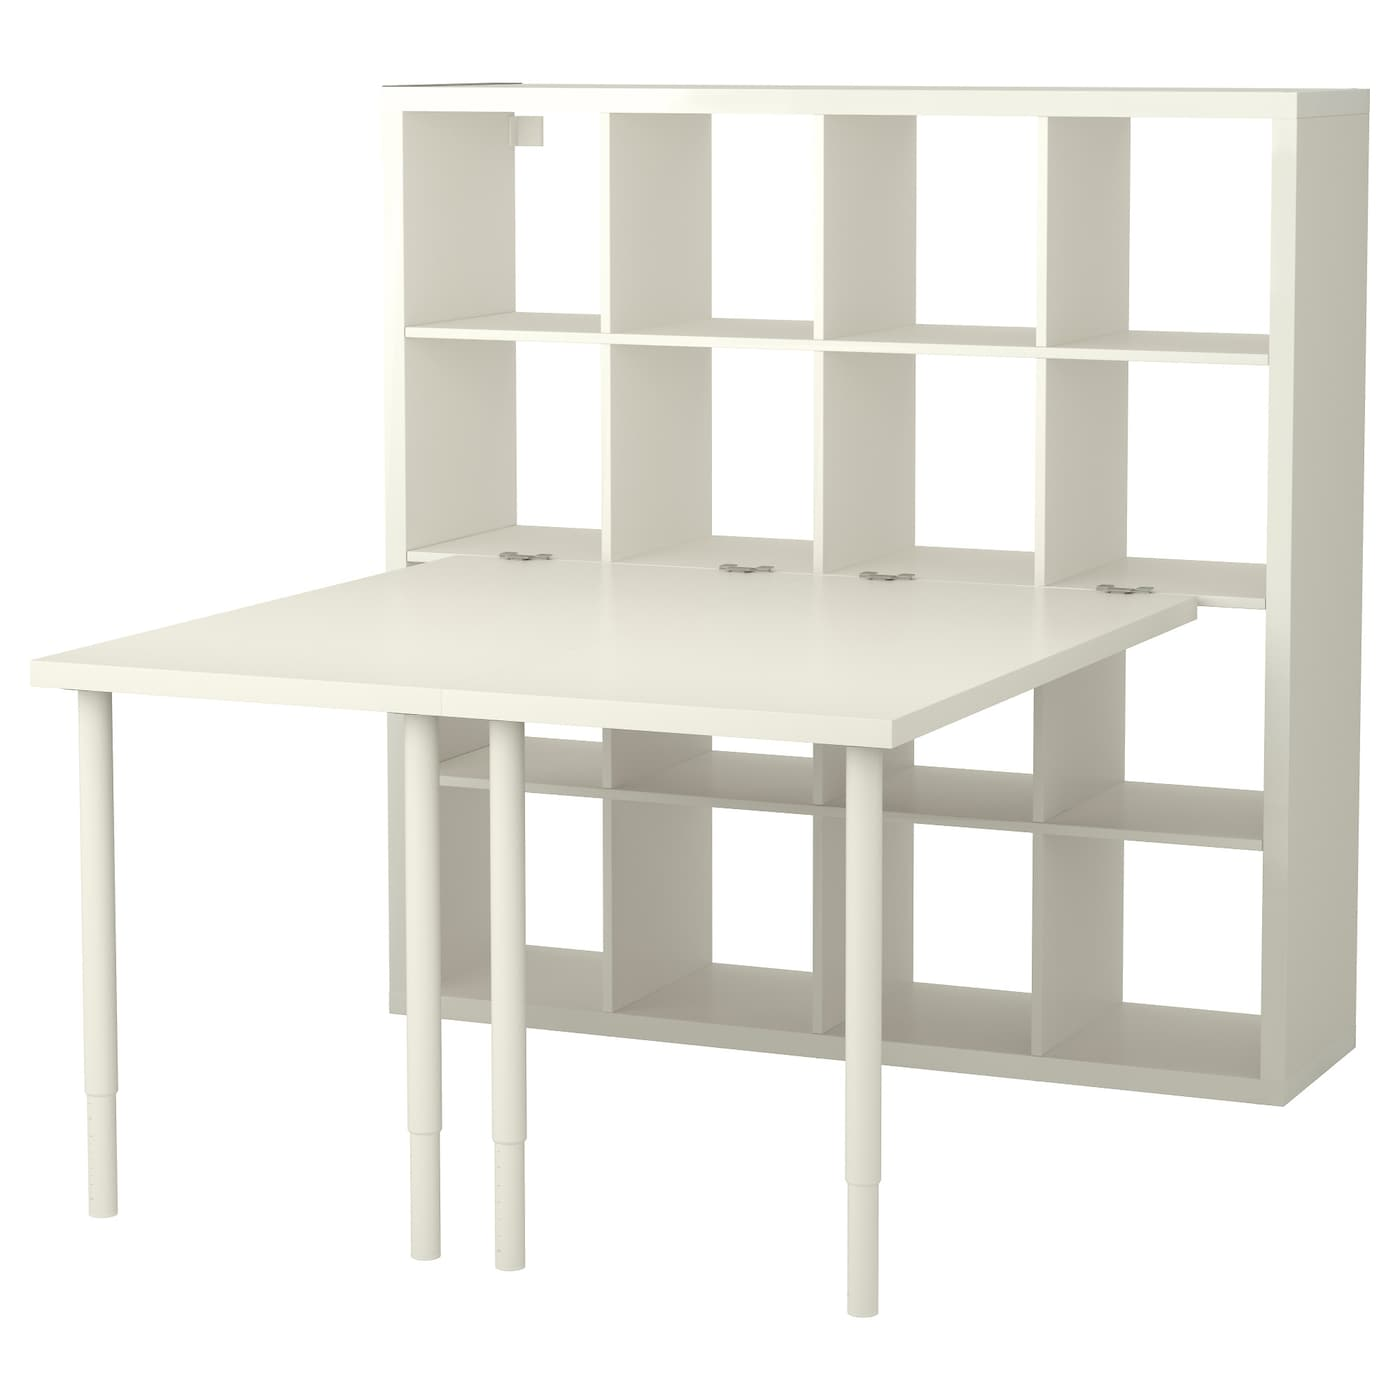 kallax desk combination white 147x147 cm ikea. Black Bedroom Furniture Sets. Home Design Ideas